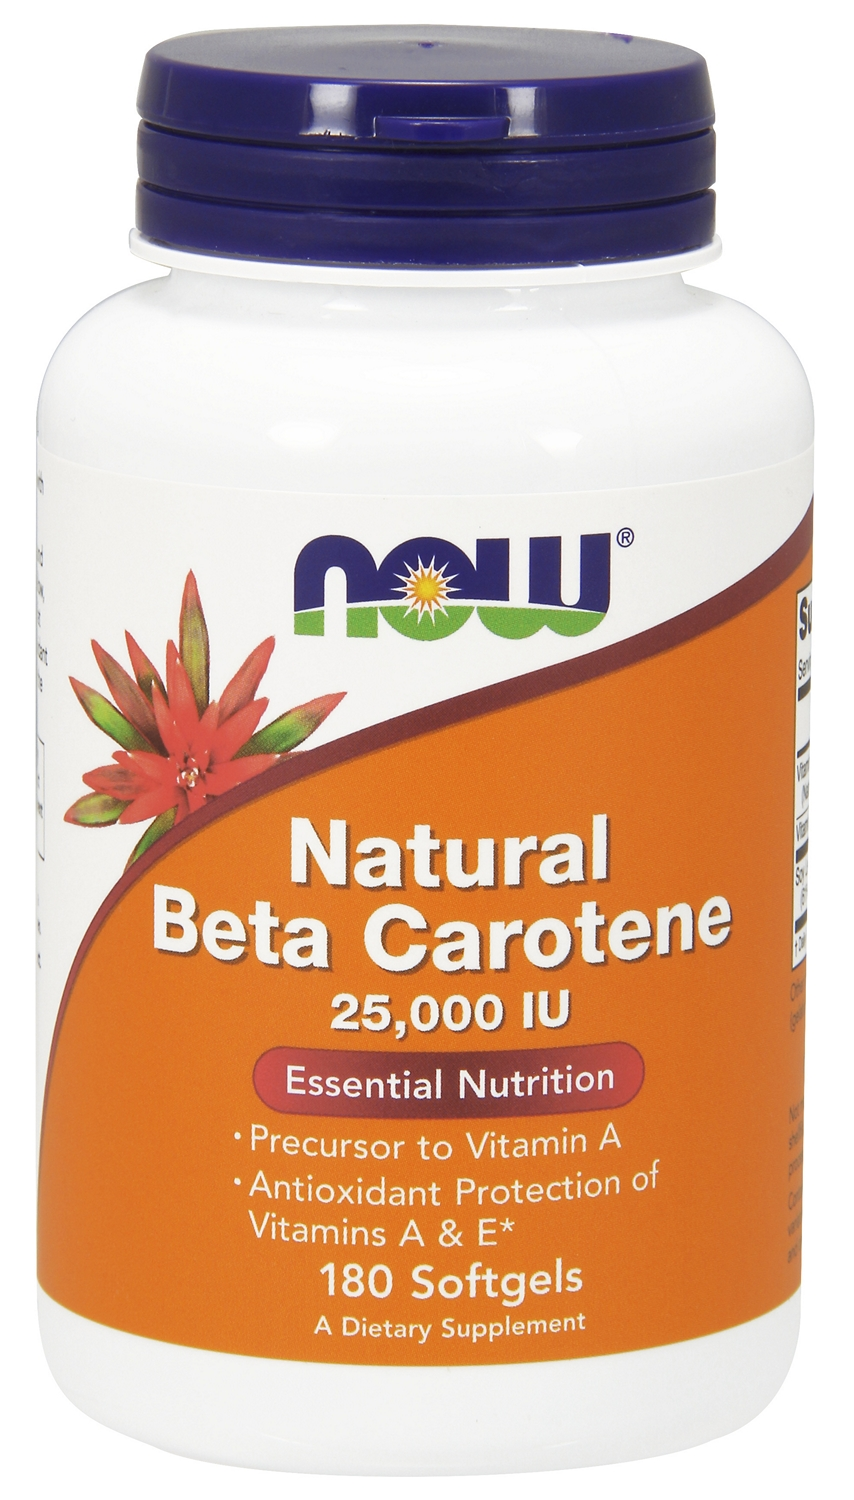 Natural Beta Carotene 25,000 IU 180 sgels by NOW